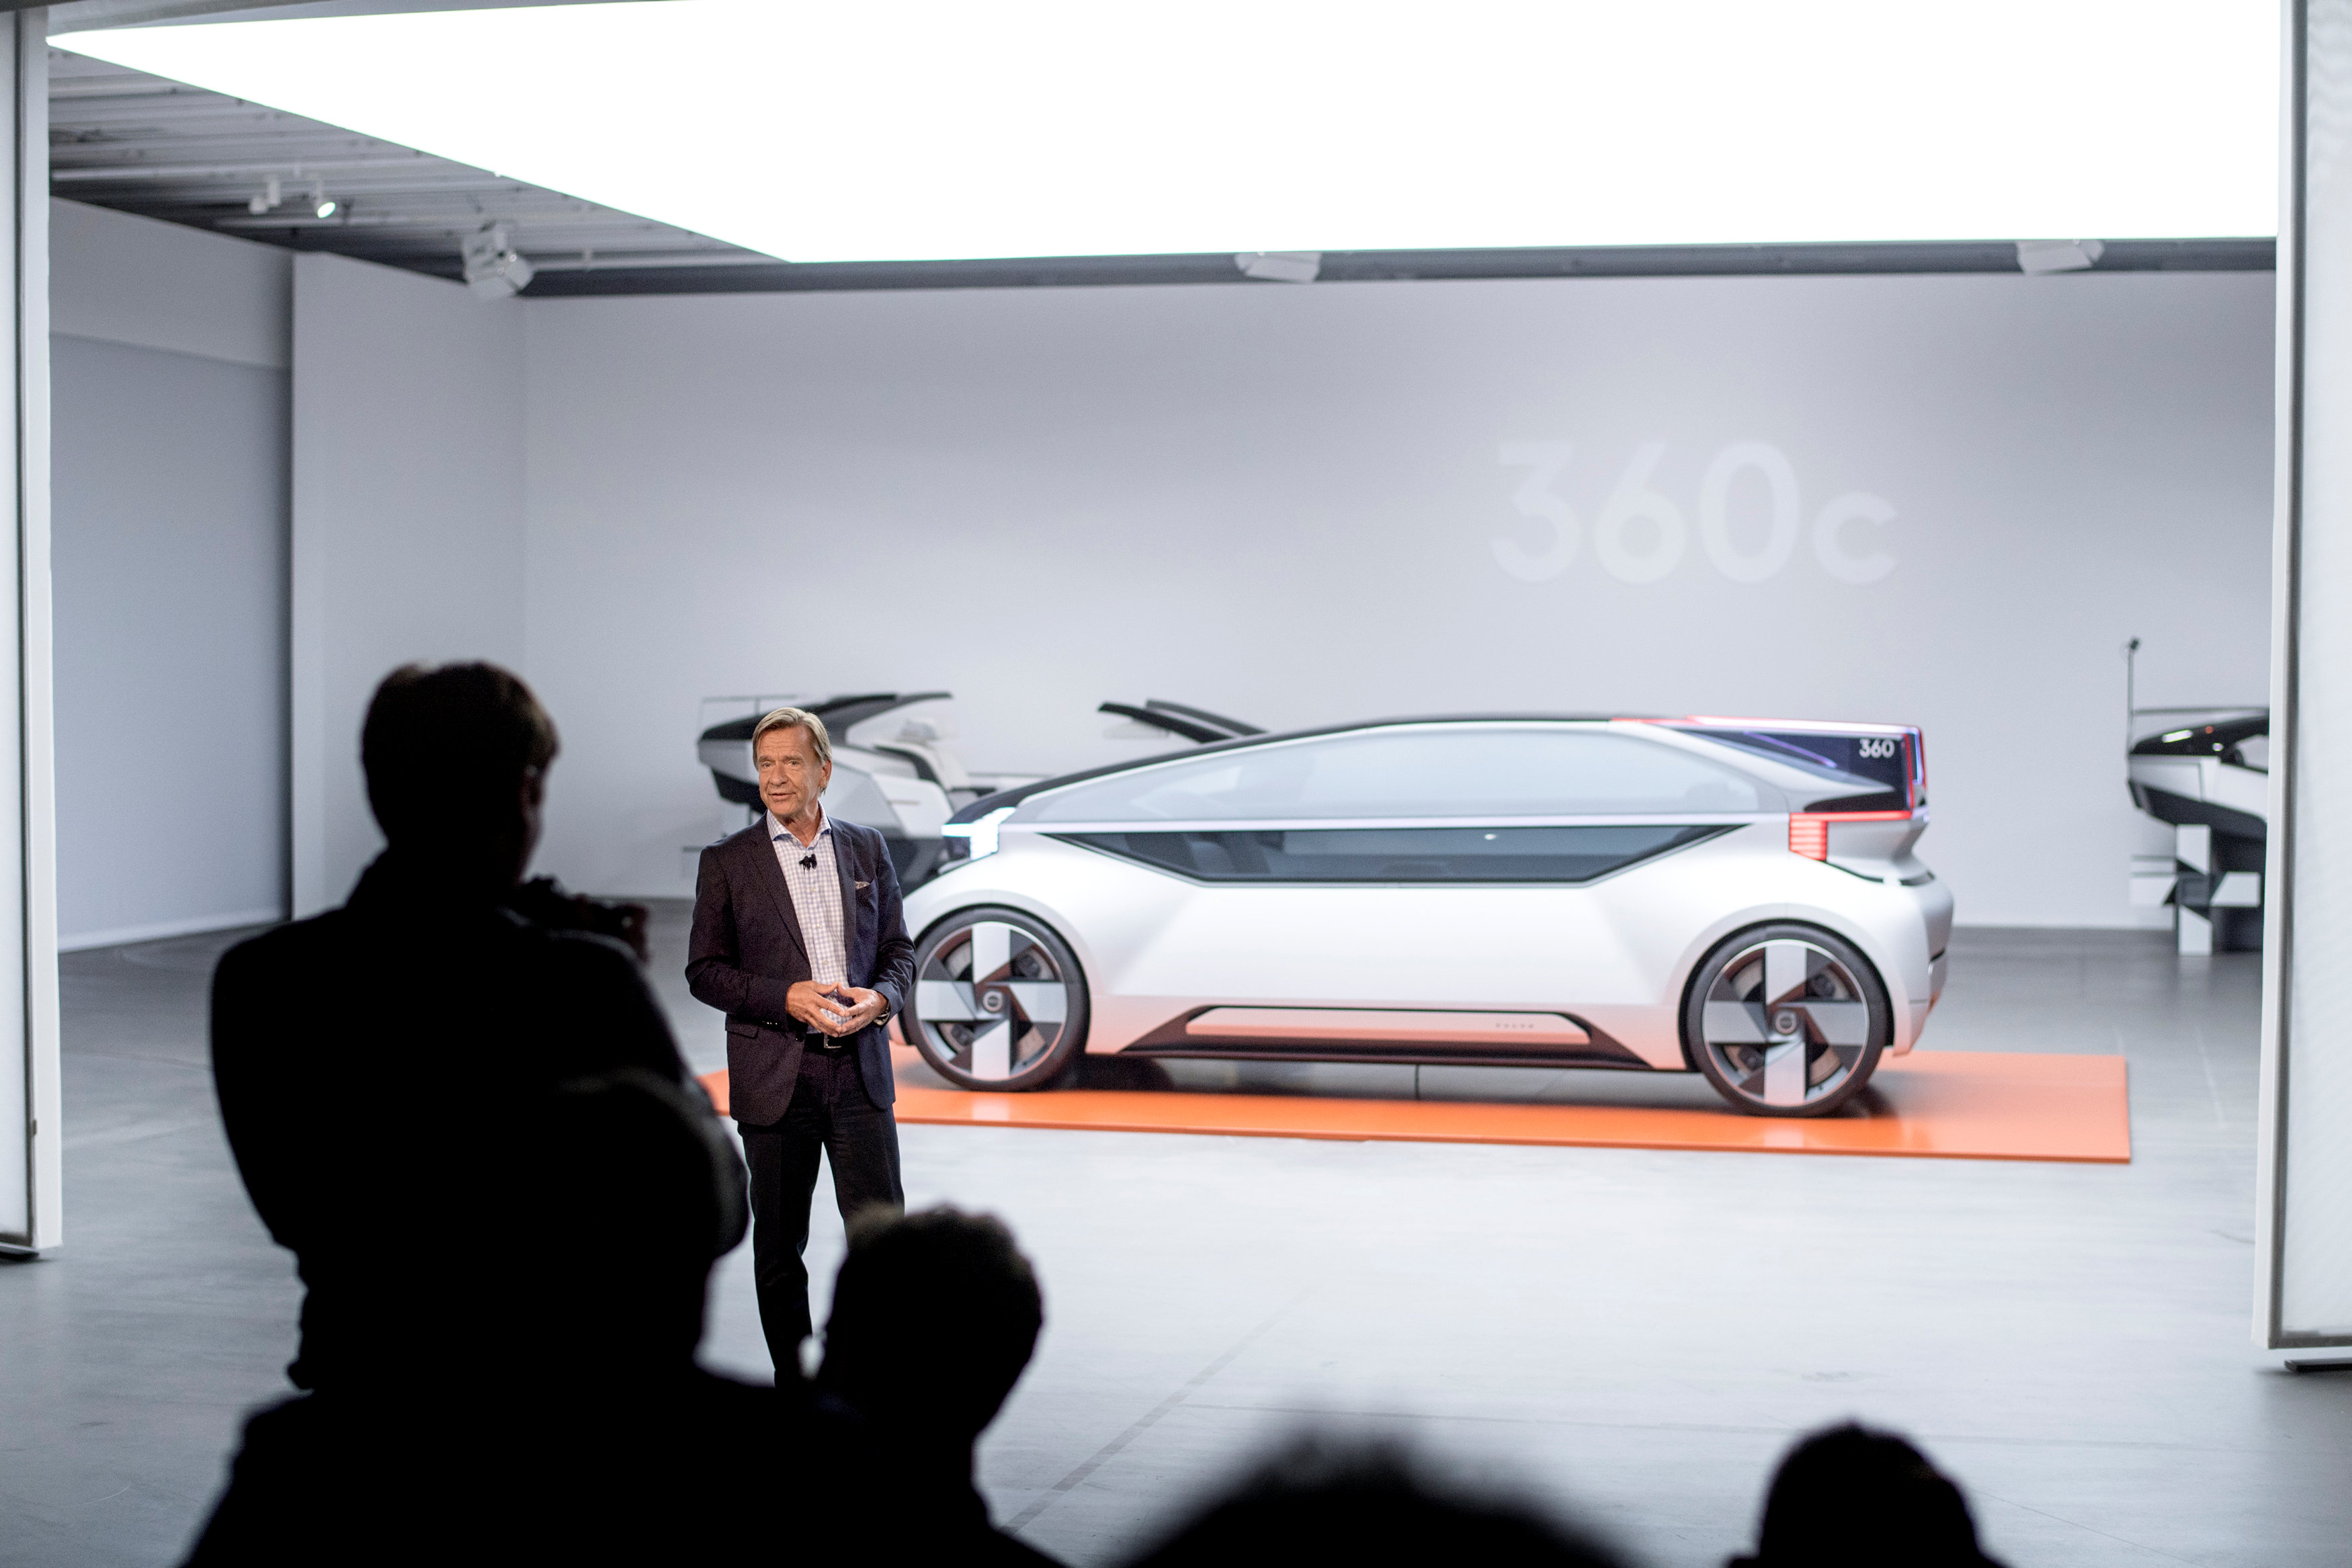 Hakan Samuelsson, CEO Volvo Cars, talks at the launch of Volvo's 360c autonomous concept car in Gothenburg